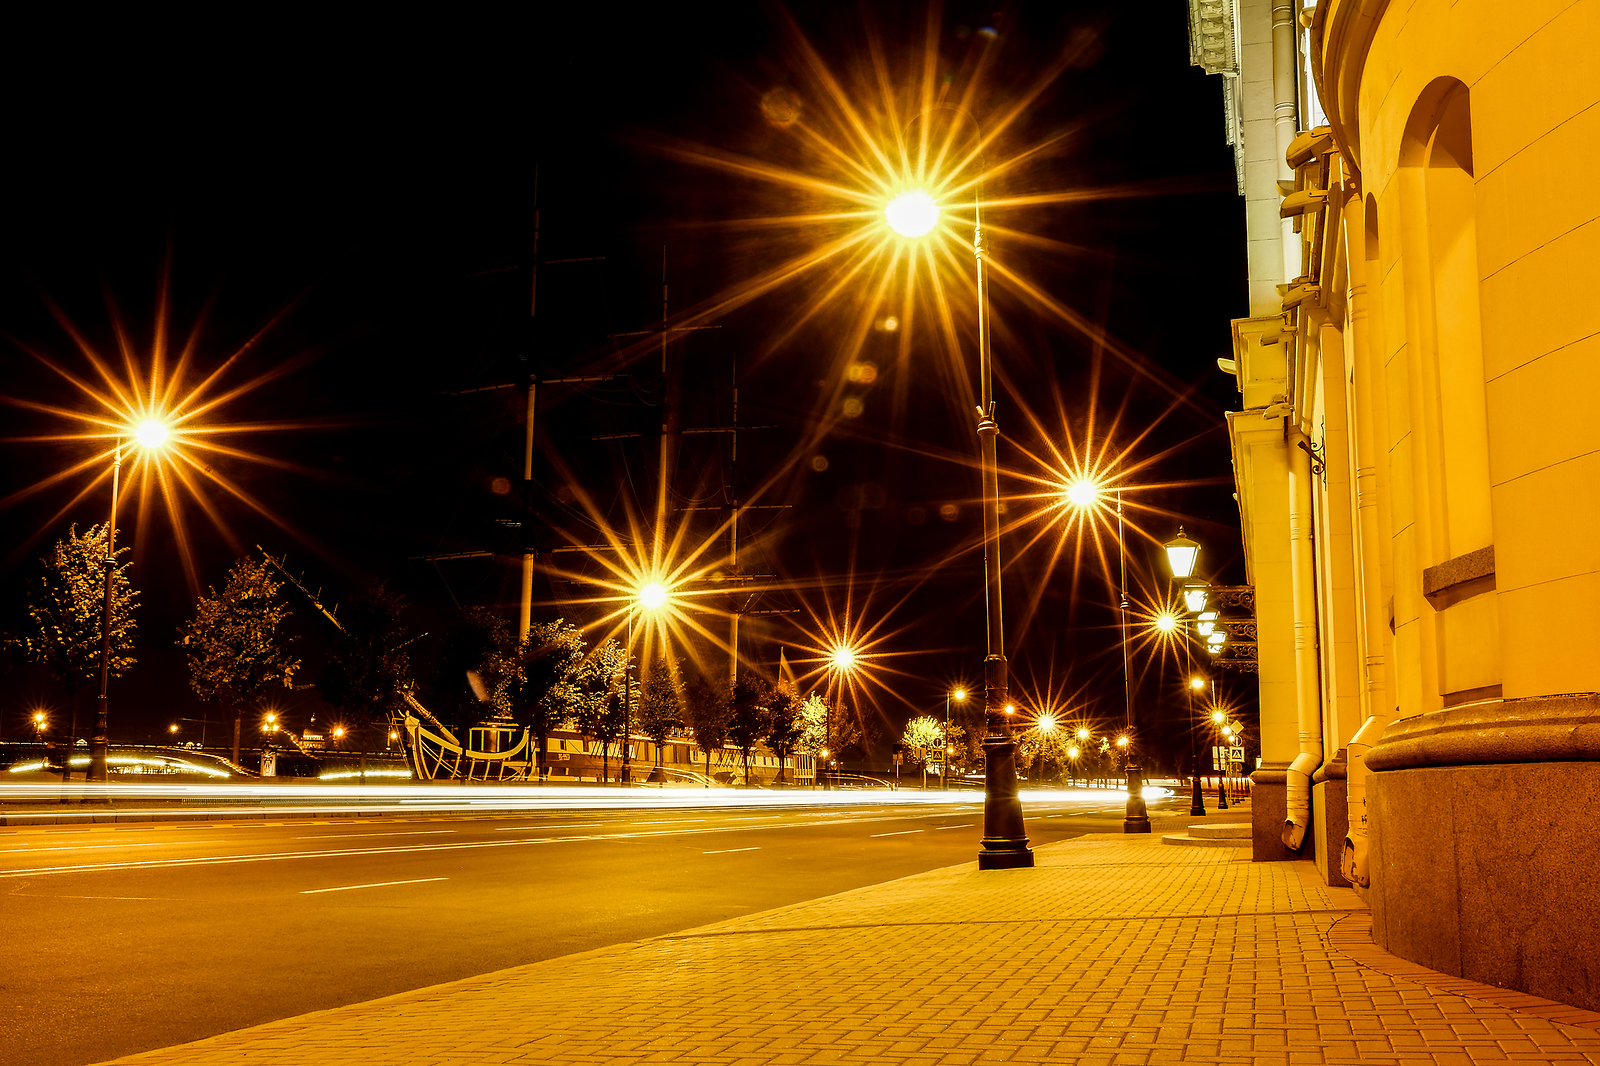 Night City Street Lights, Bokeh, Background, Darkness. Night Lig